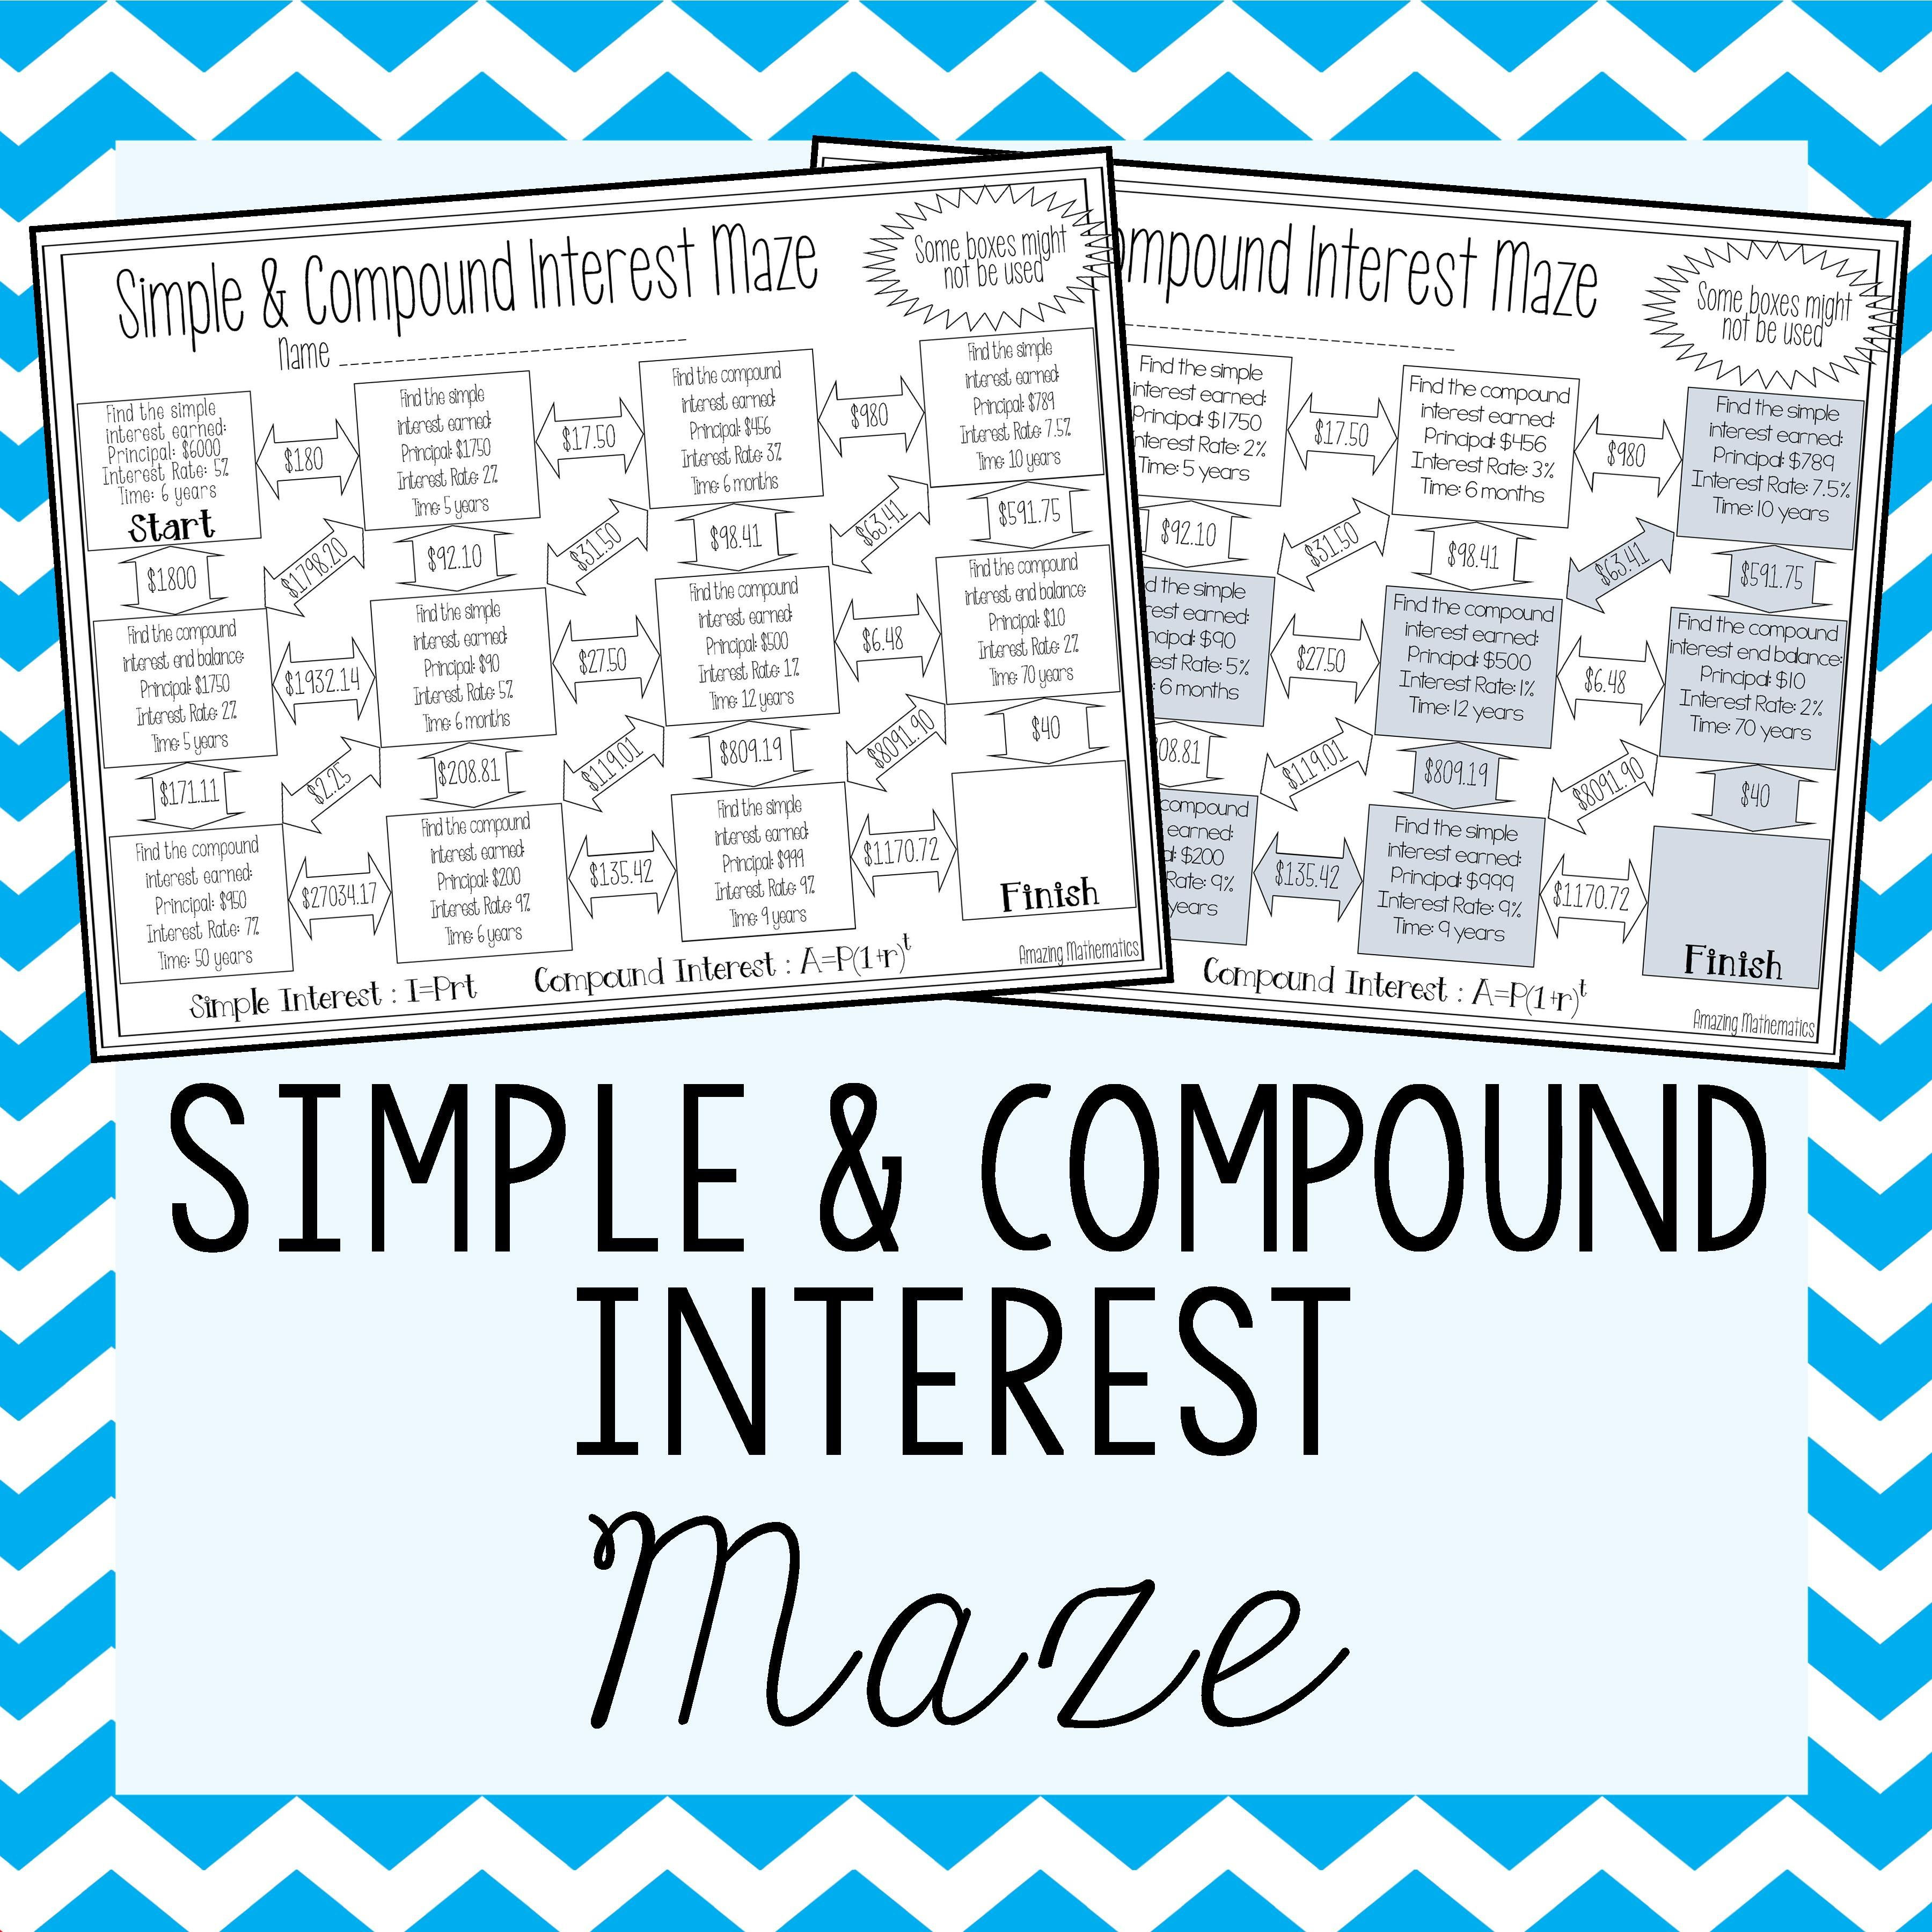 Worksheets Calculating Compound Interest Worksheet simple compound interest maze these mazes would be such a fun activity for my 8th grade math students to practice their calculating inter